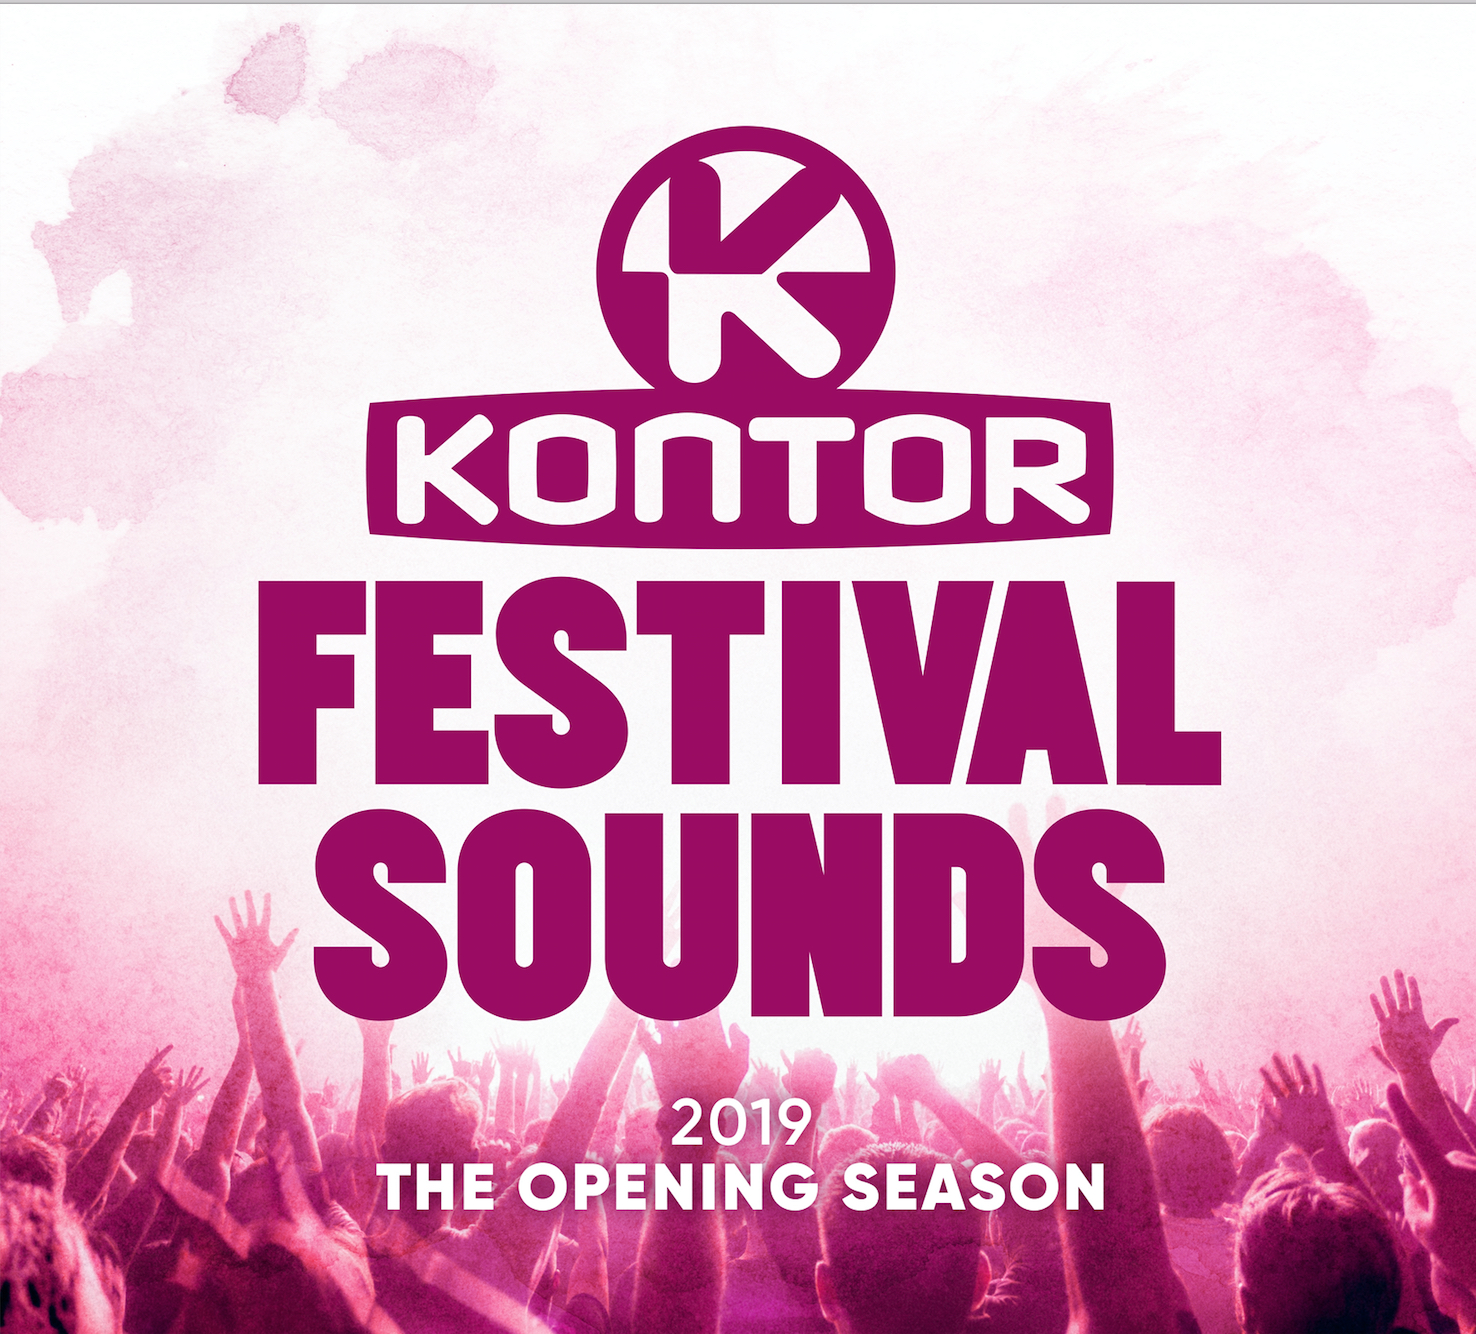 KONTOR FESTIVAL SOUNDS 2019 – THE OPENING SEASON